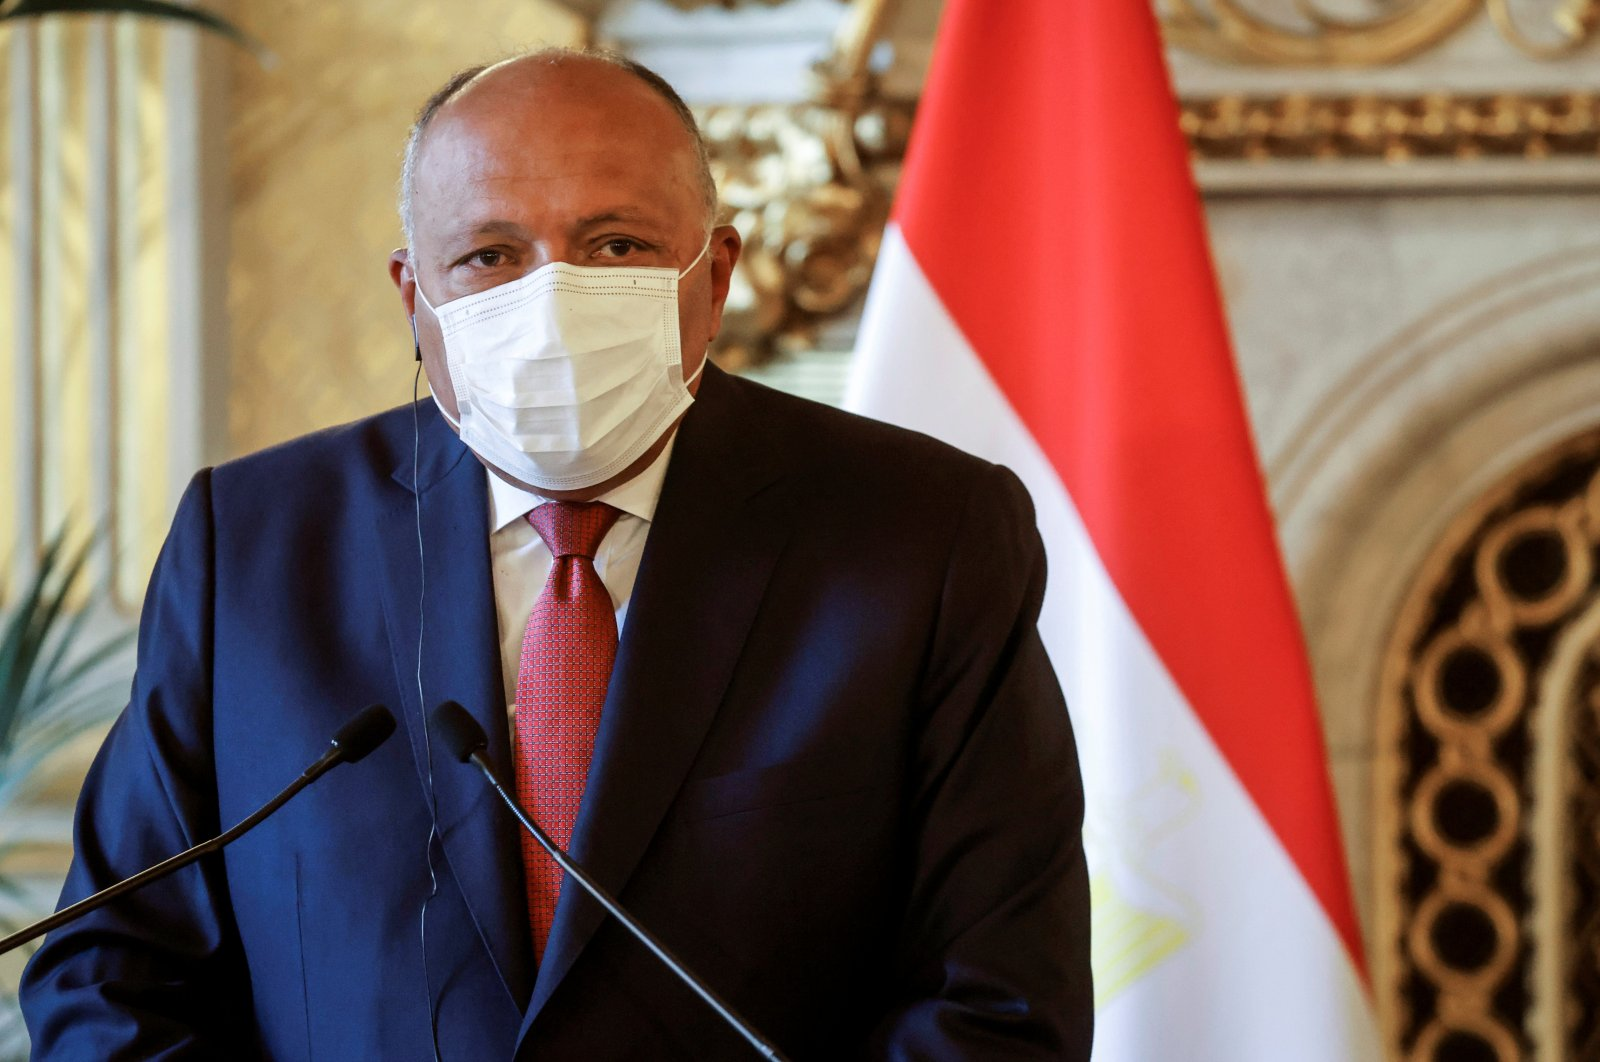 Egyptian Minister of Foreign Affairs Sameh Shoukry, wearing a protective face mask, attends a joint press conference following a meeting on the Middle East Peace process, in Paris, France, March 11, 2021. (Reuters Photo)